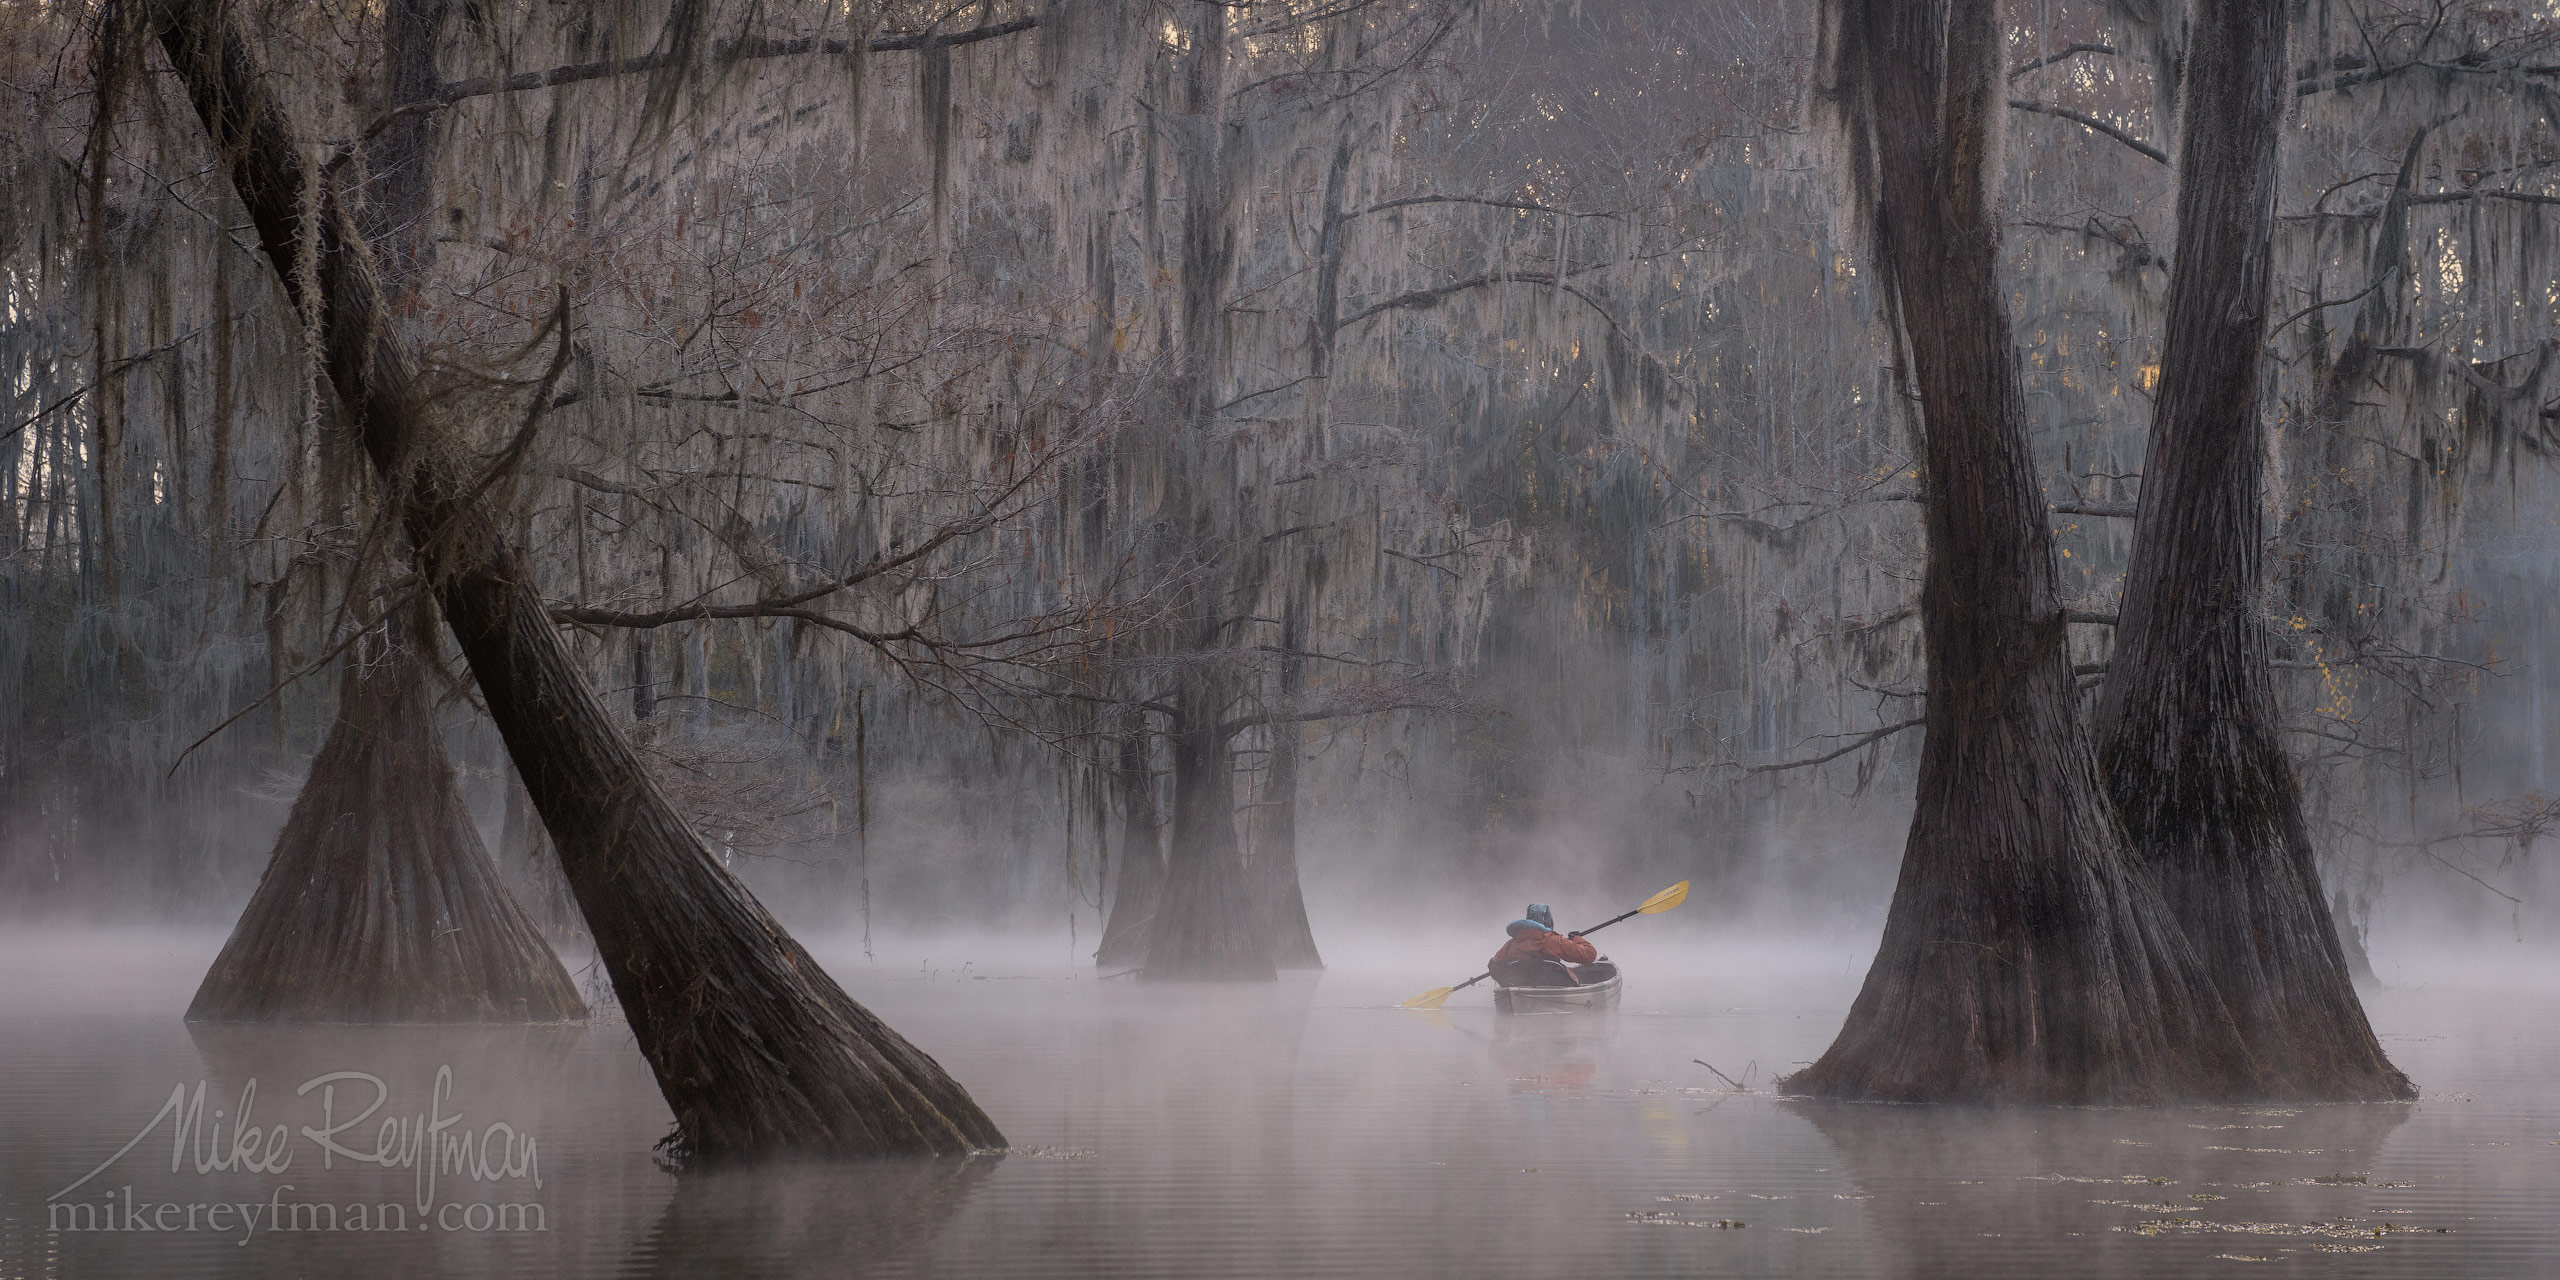 Kayaker paddling between Bald Cypress trees in the fog. Caddo Lake, Texas, US 017-LT1-50A3315_Pano-2x1.jpg - Bold Cypress and Tupelo Trees in the swamps of Atchafalaya River Basin. Caddo, Martin and Fousse Lakes. Texas/Louisiana, USA. - Mike Reyfman Photography